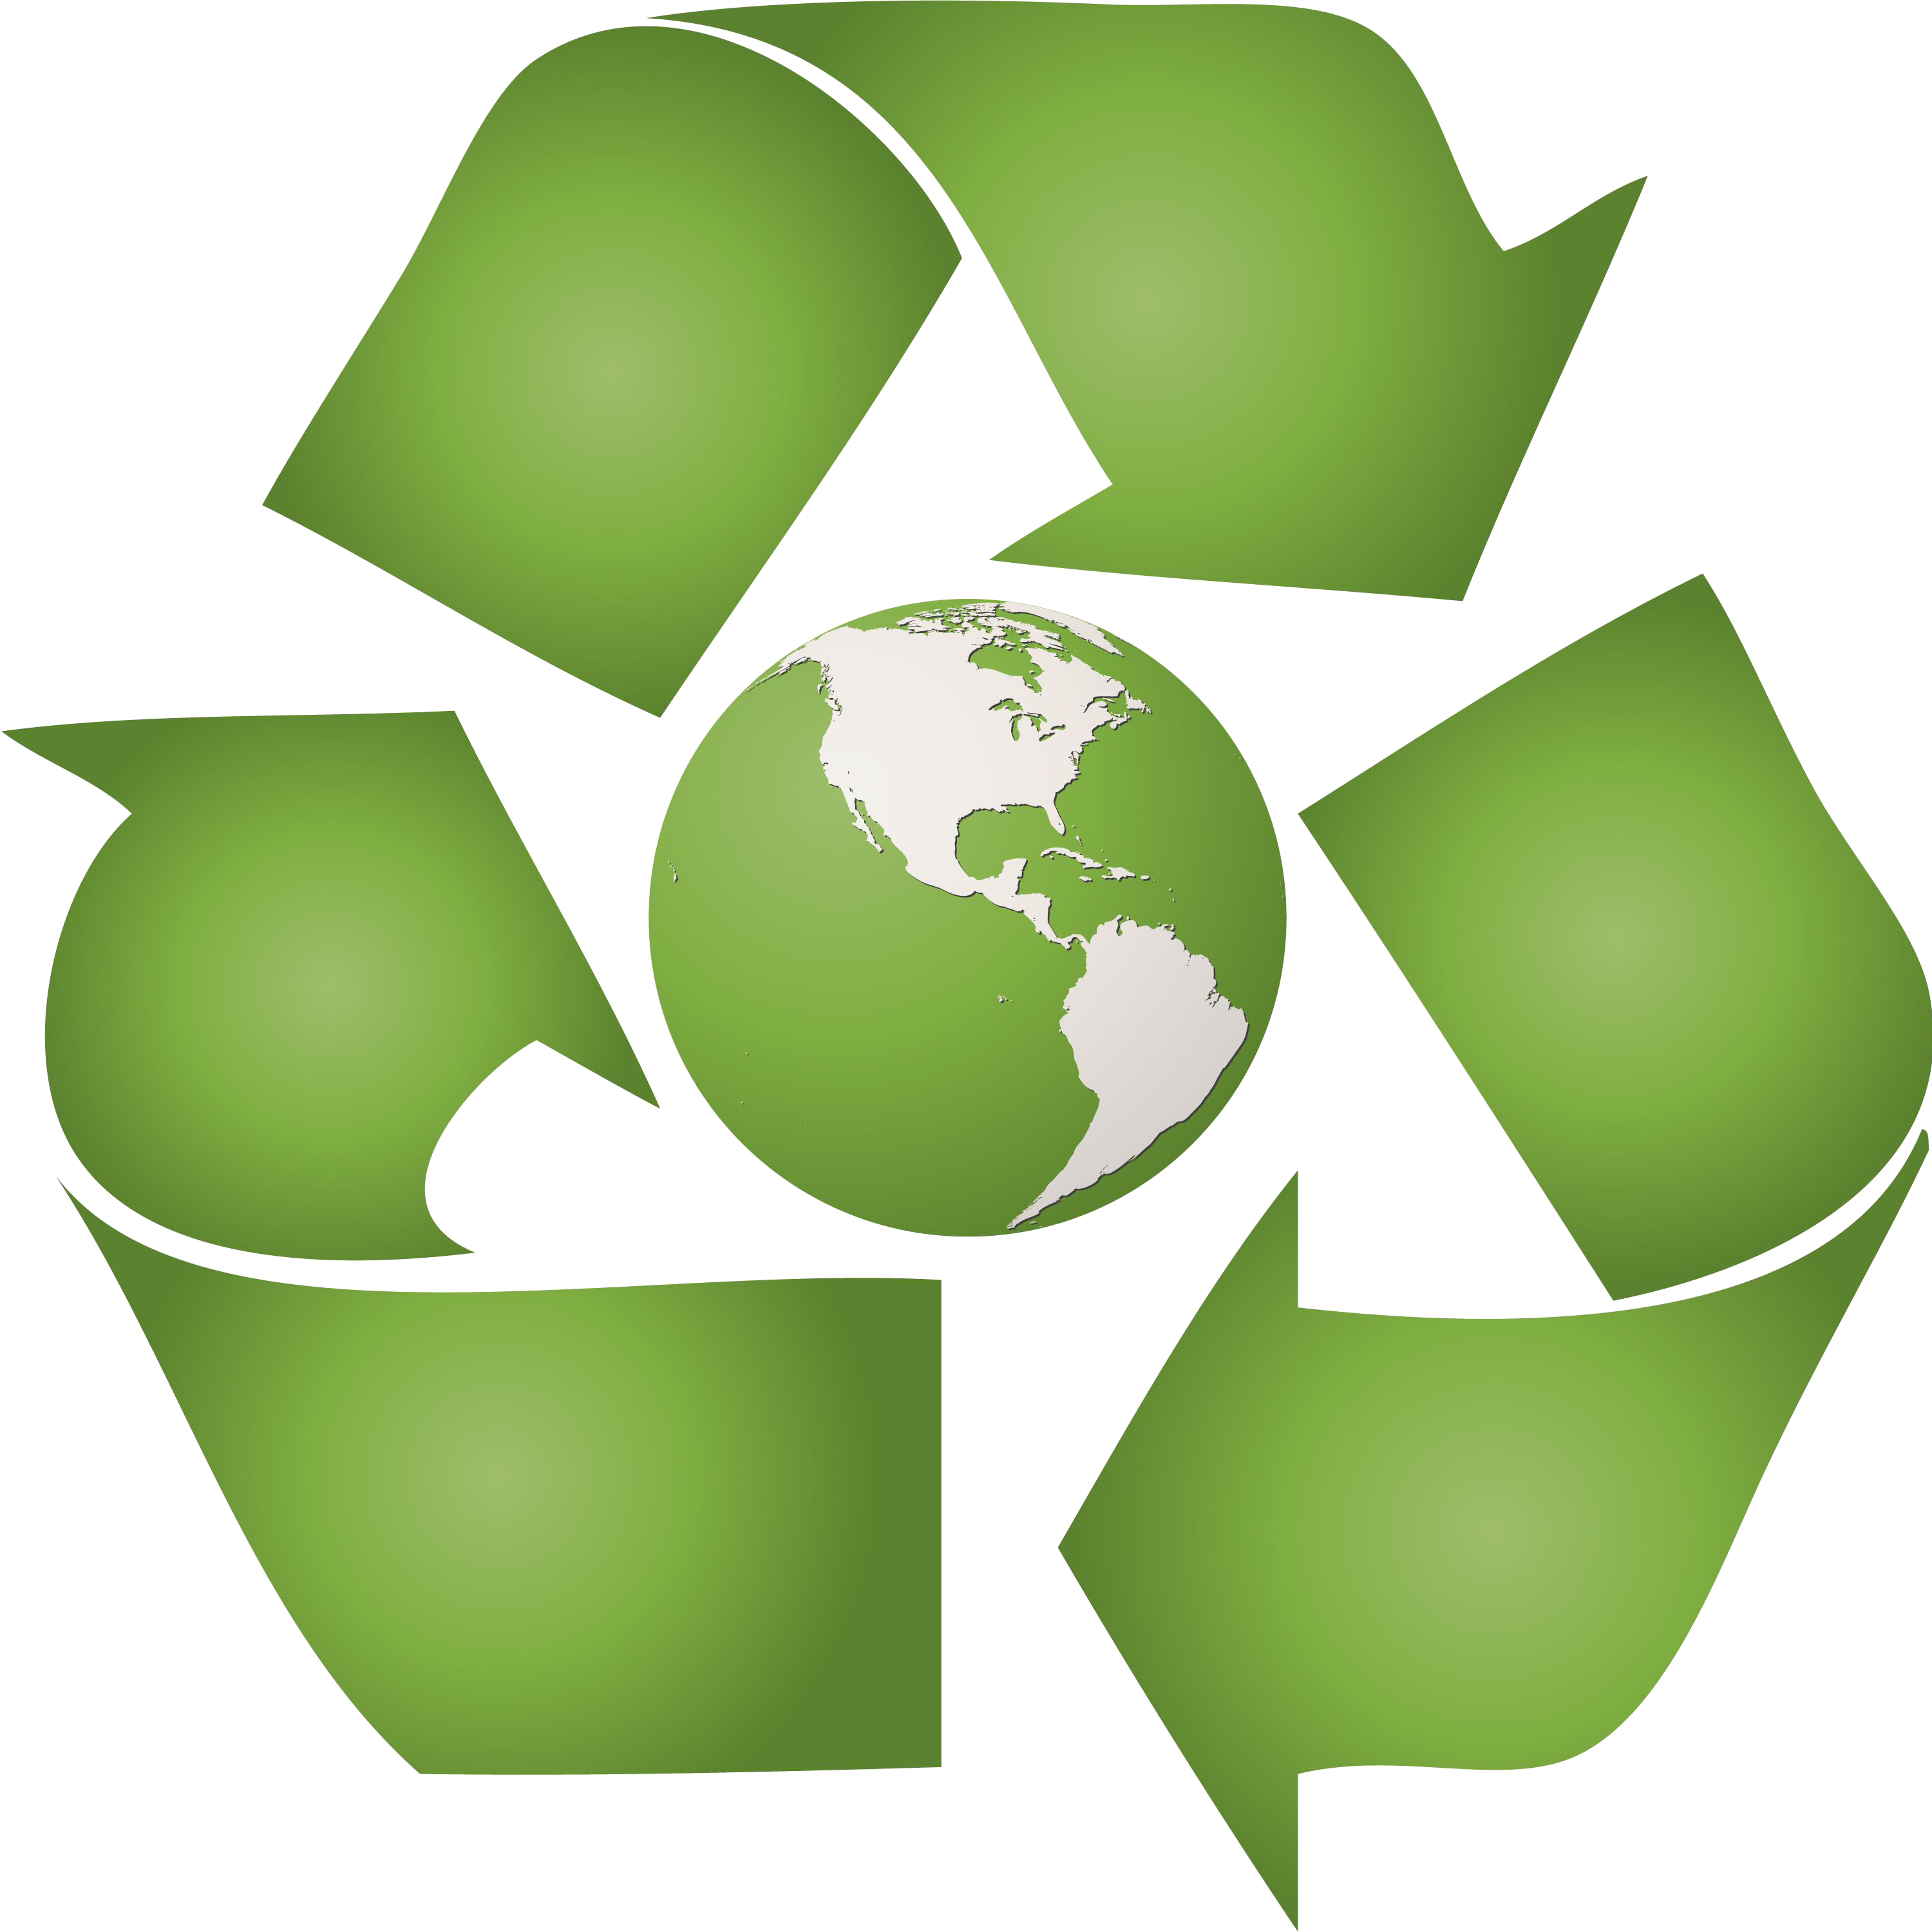 Environment clipart sustainable living. Renewable energy community development